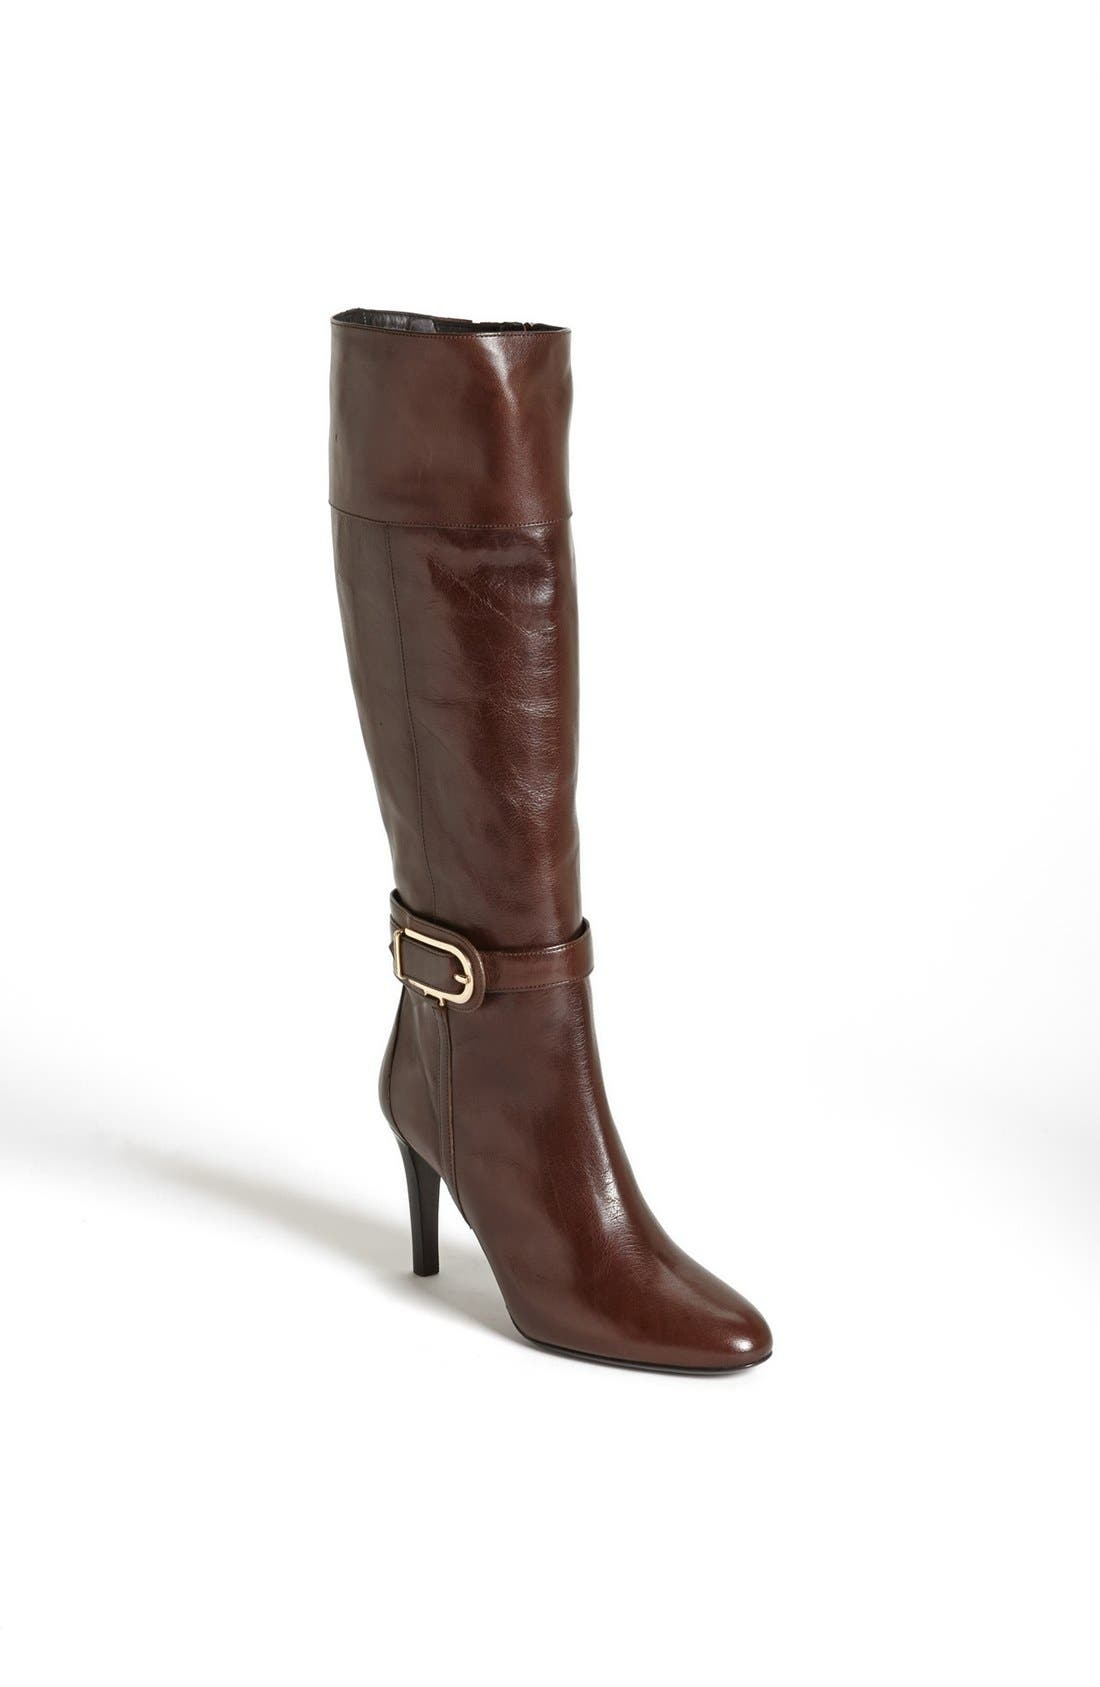 Main Image - Burberry 'Monteagle' Tall Boot